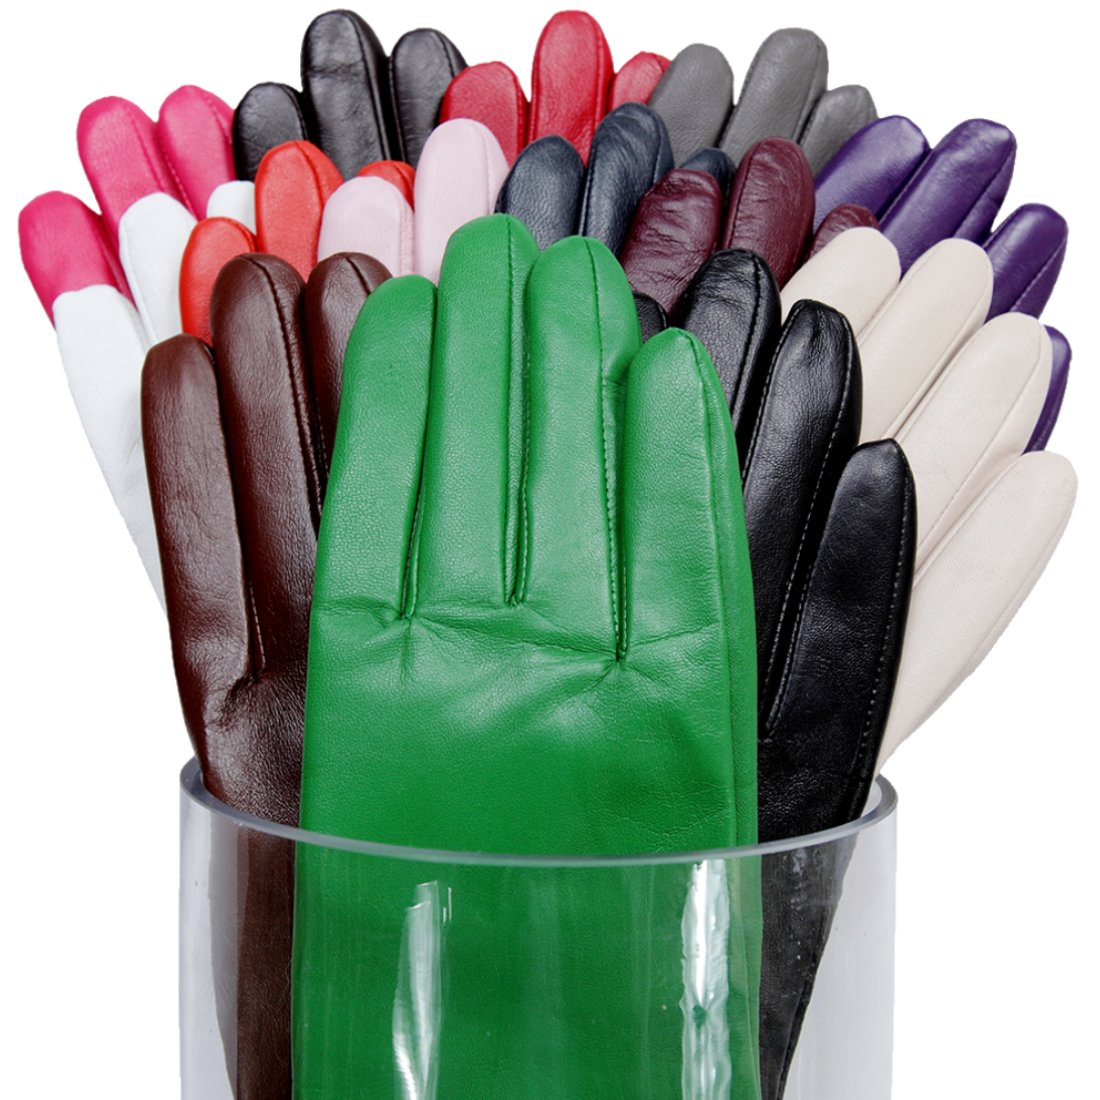 MATSU Simple Sytle Women Winter Warm Lambskin Leather Gloves 7 Colors M9022 (L, Black-Touchscreen)